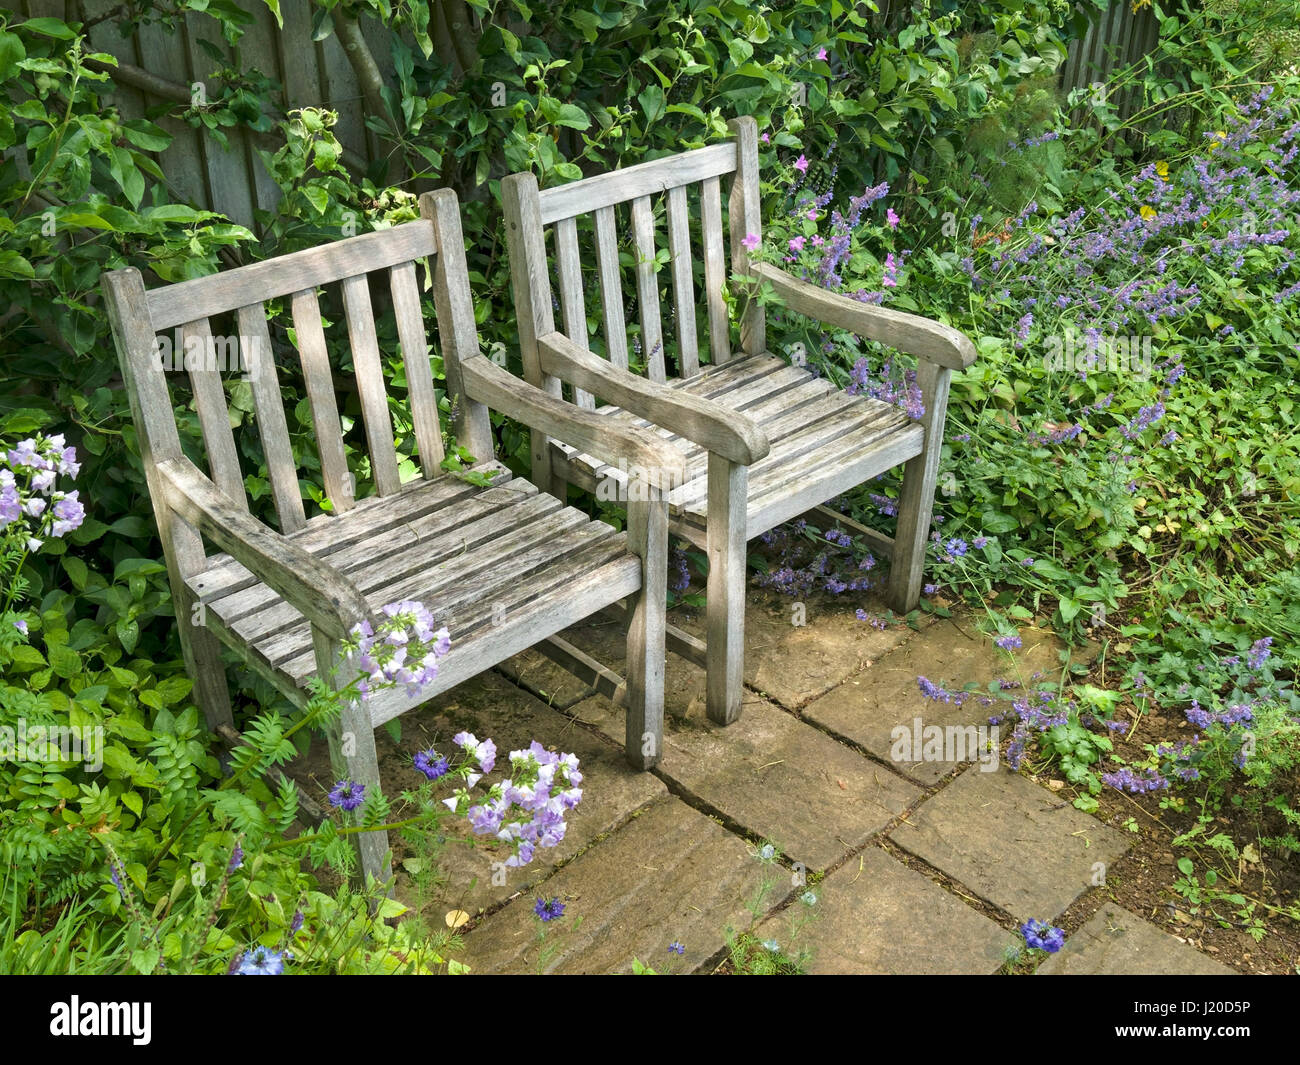 Row of two wooden garden chairs on small slabbed patio, Barnsdale